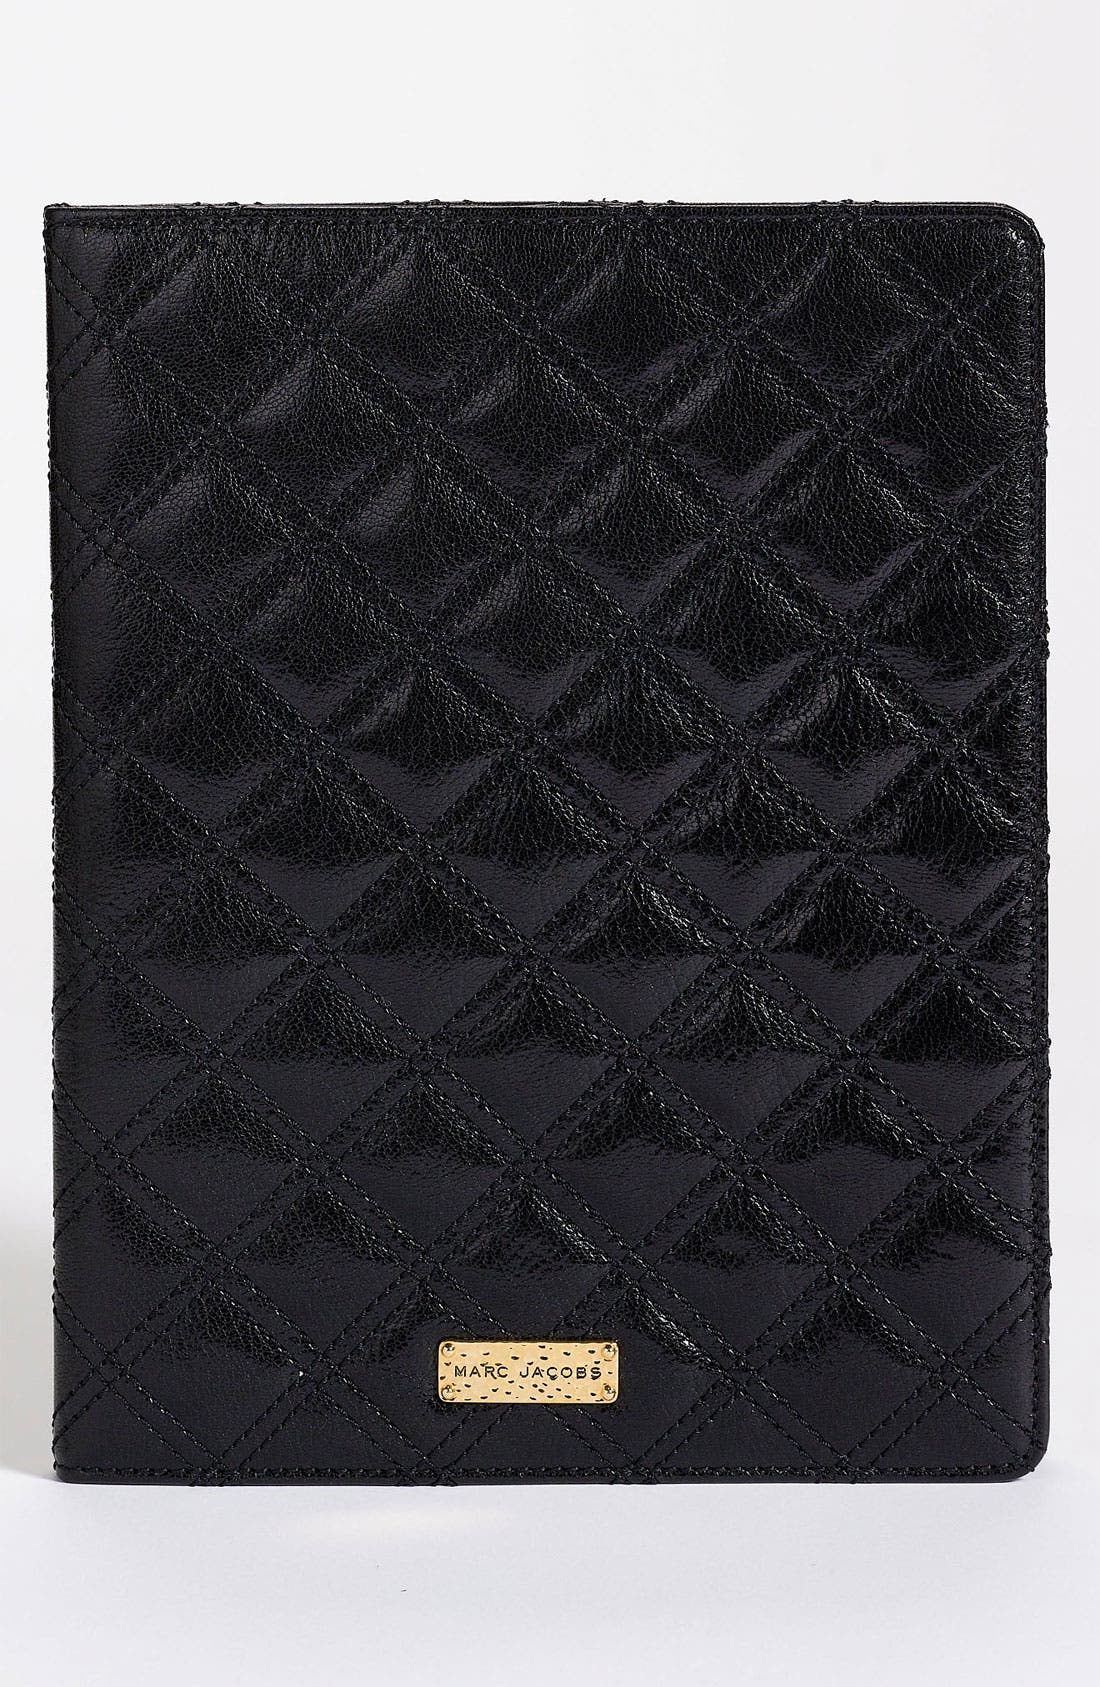 Main Image - MARC JACOBS 'Baroque' iPad Folder